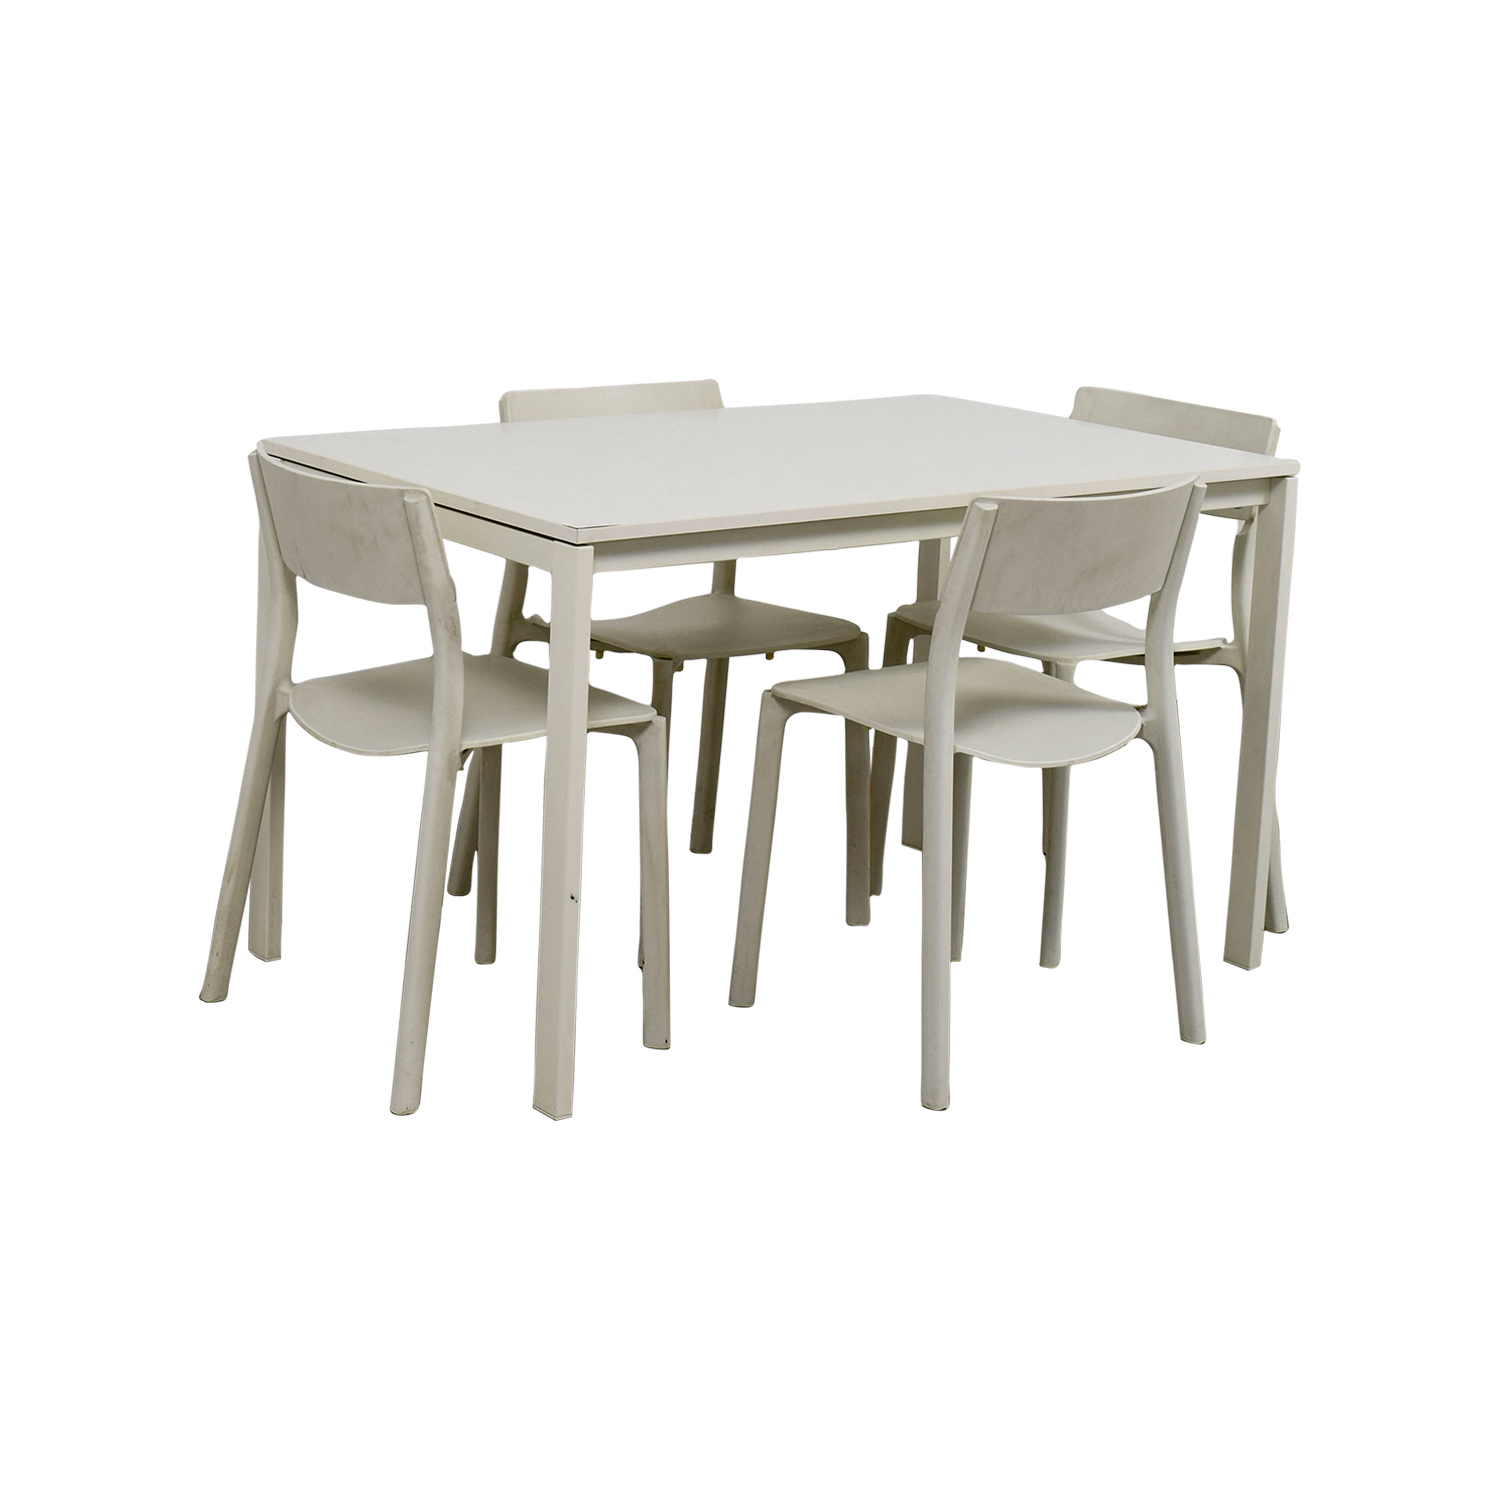 65 off ikea ikea white kitchen table and chairs tables for Kitchen table and stools set